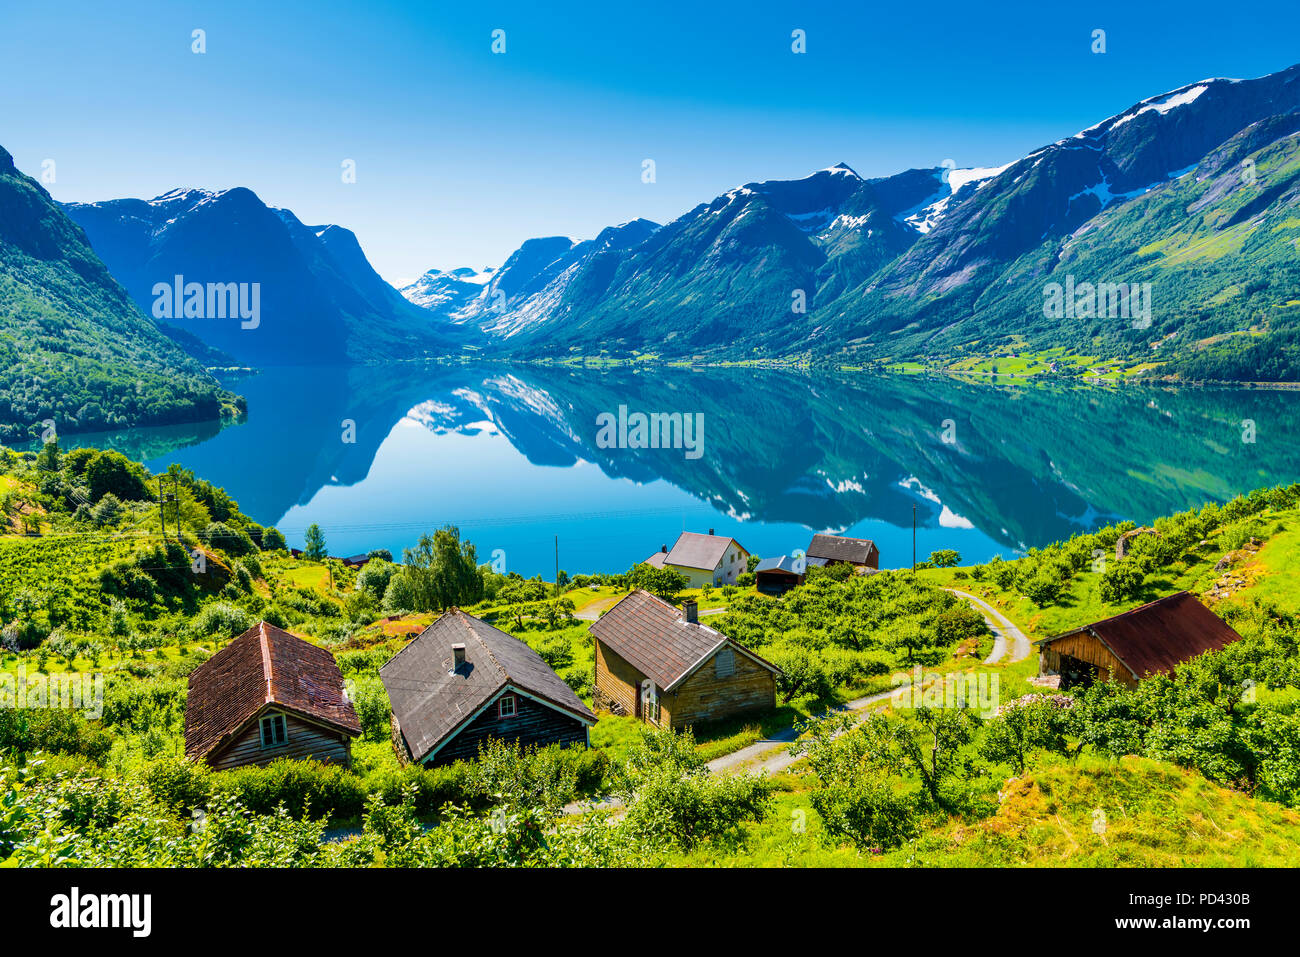 The small village Flo by the lake Oppstrynsvatnet in Western Norway - Stock Image